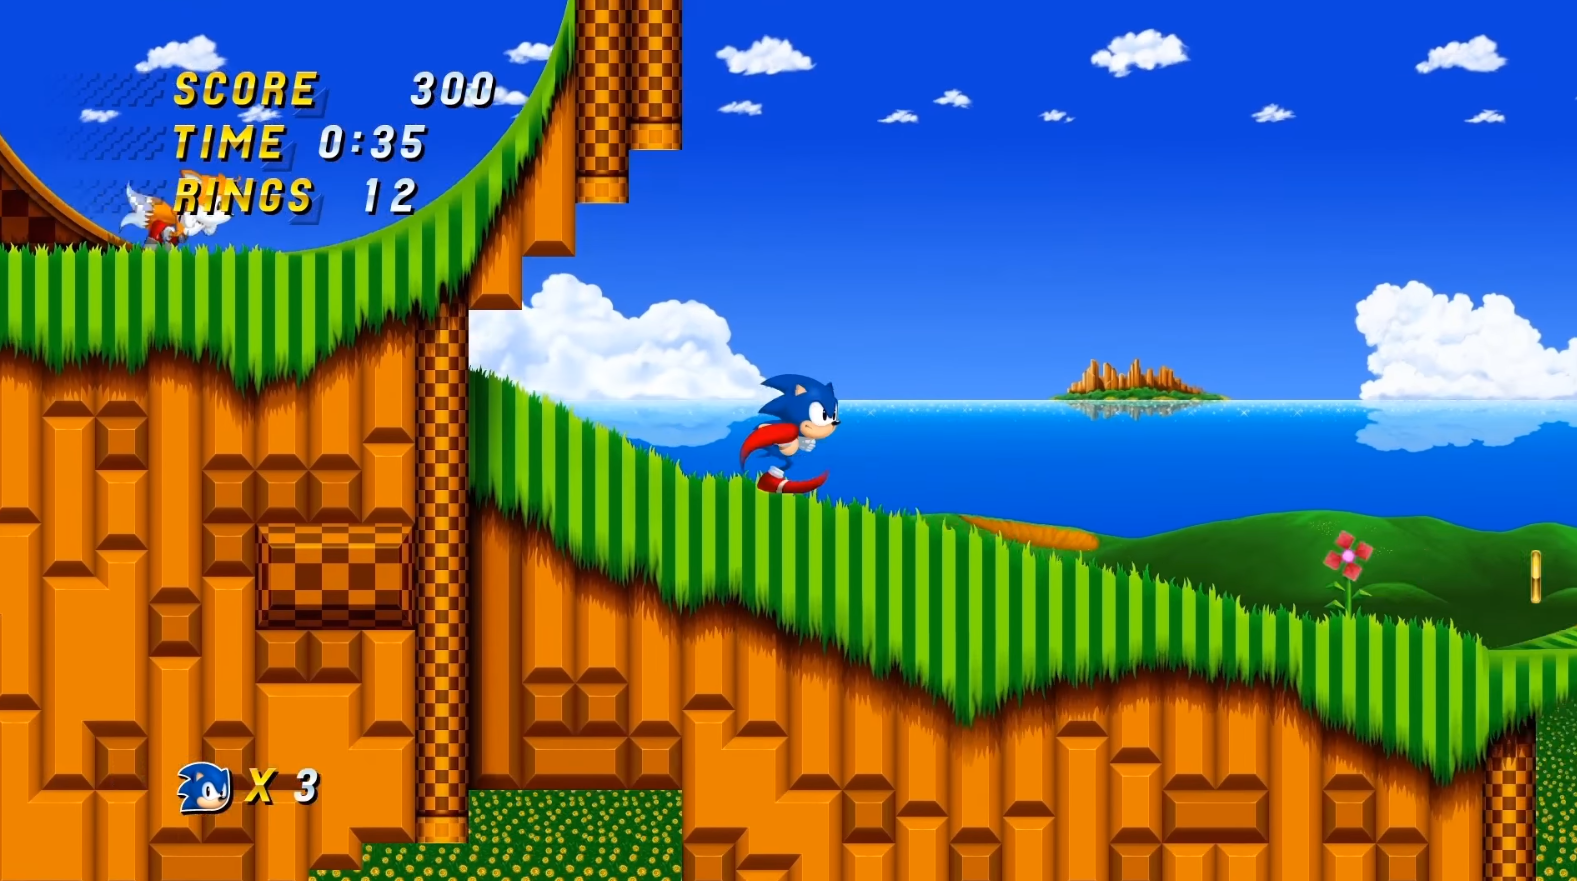 forgotten sonic 2 hd fan project springs back into action common